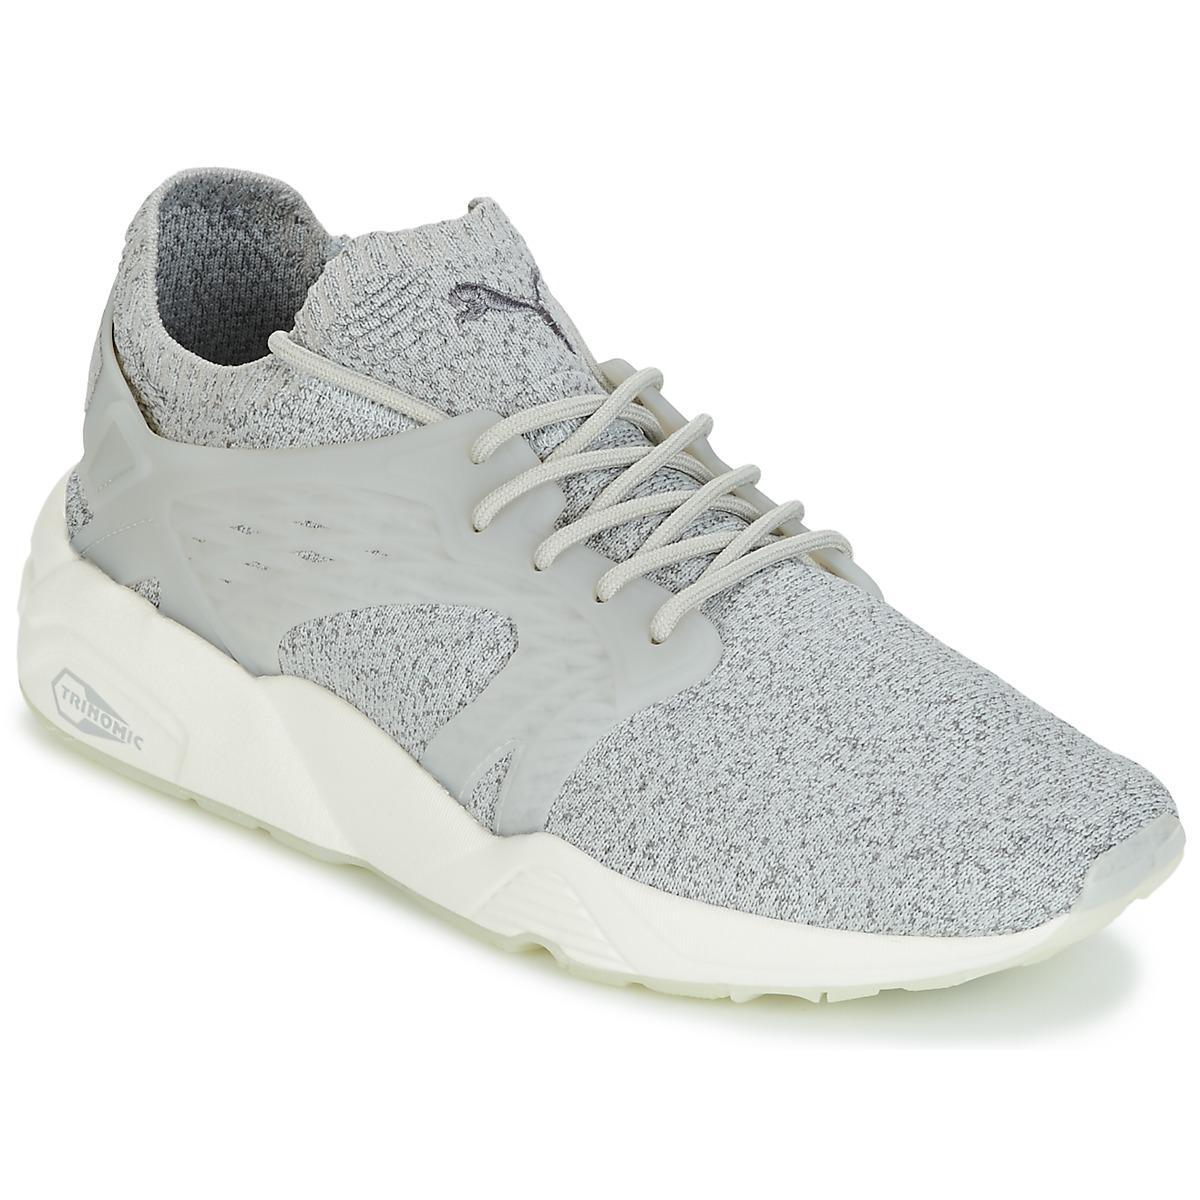 317f7d7dd98 PUMA Blaze Cage Evoknit Shoes (trainers) in Gray for Men - Lyst